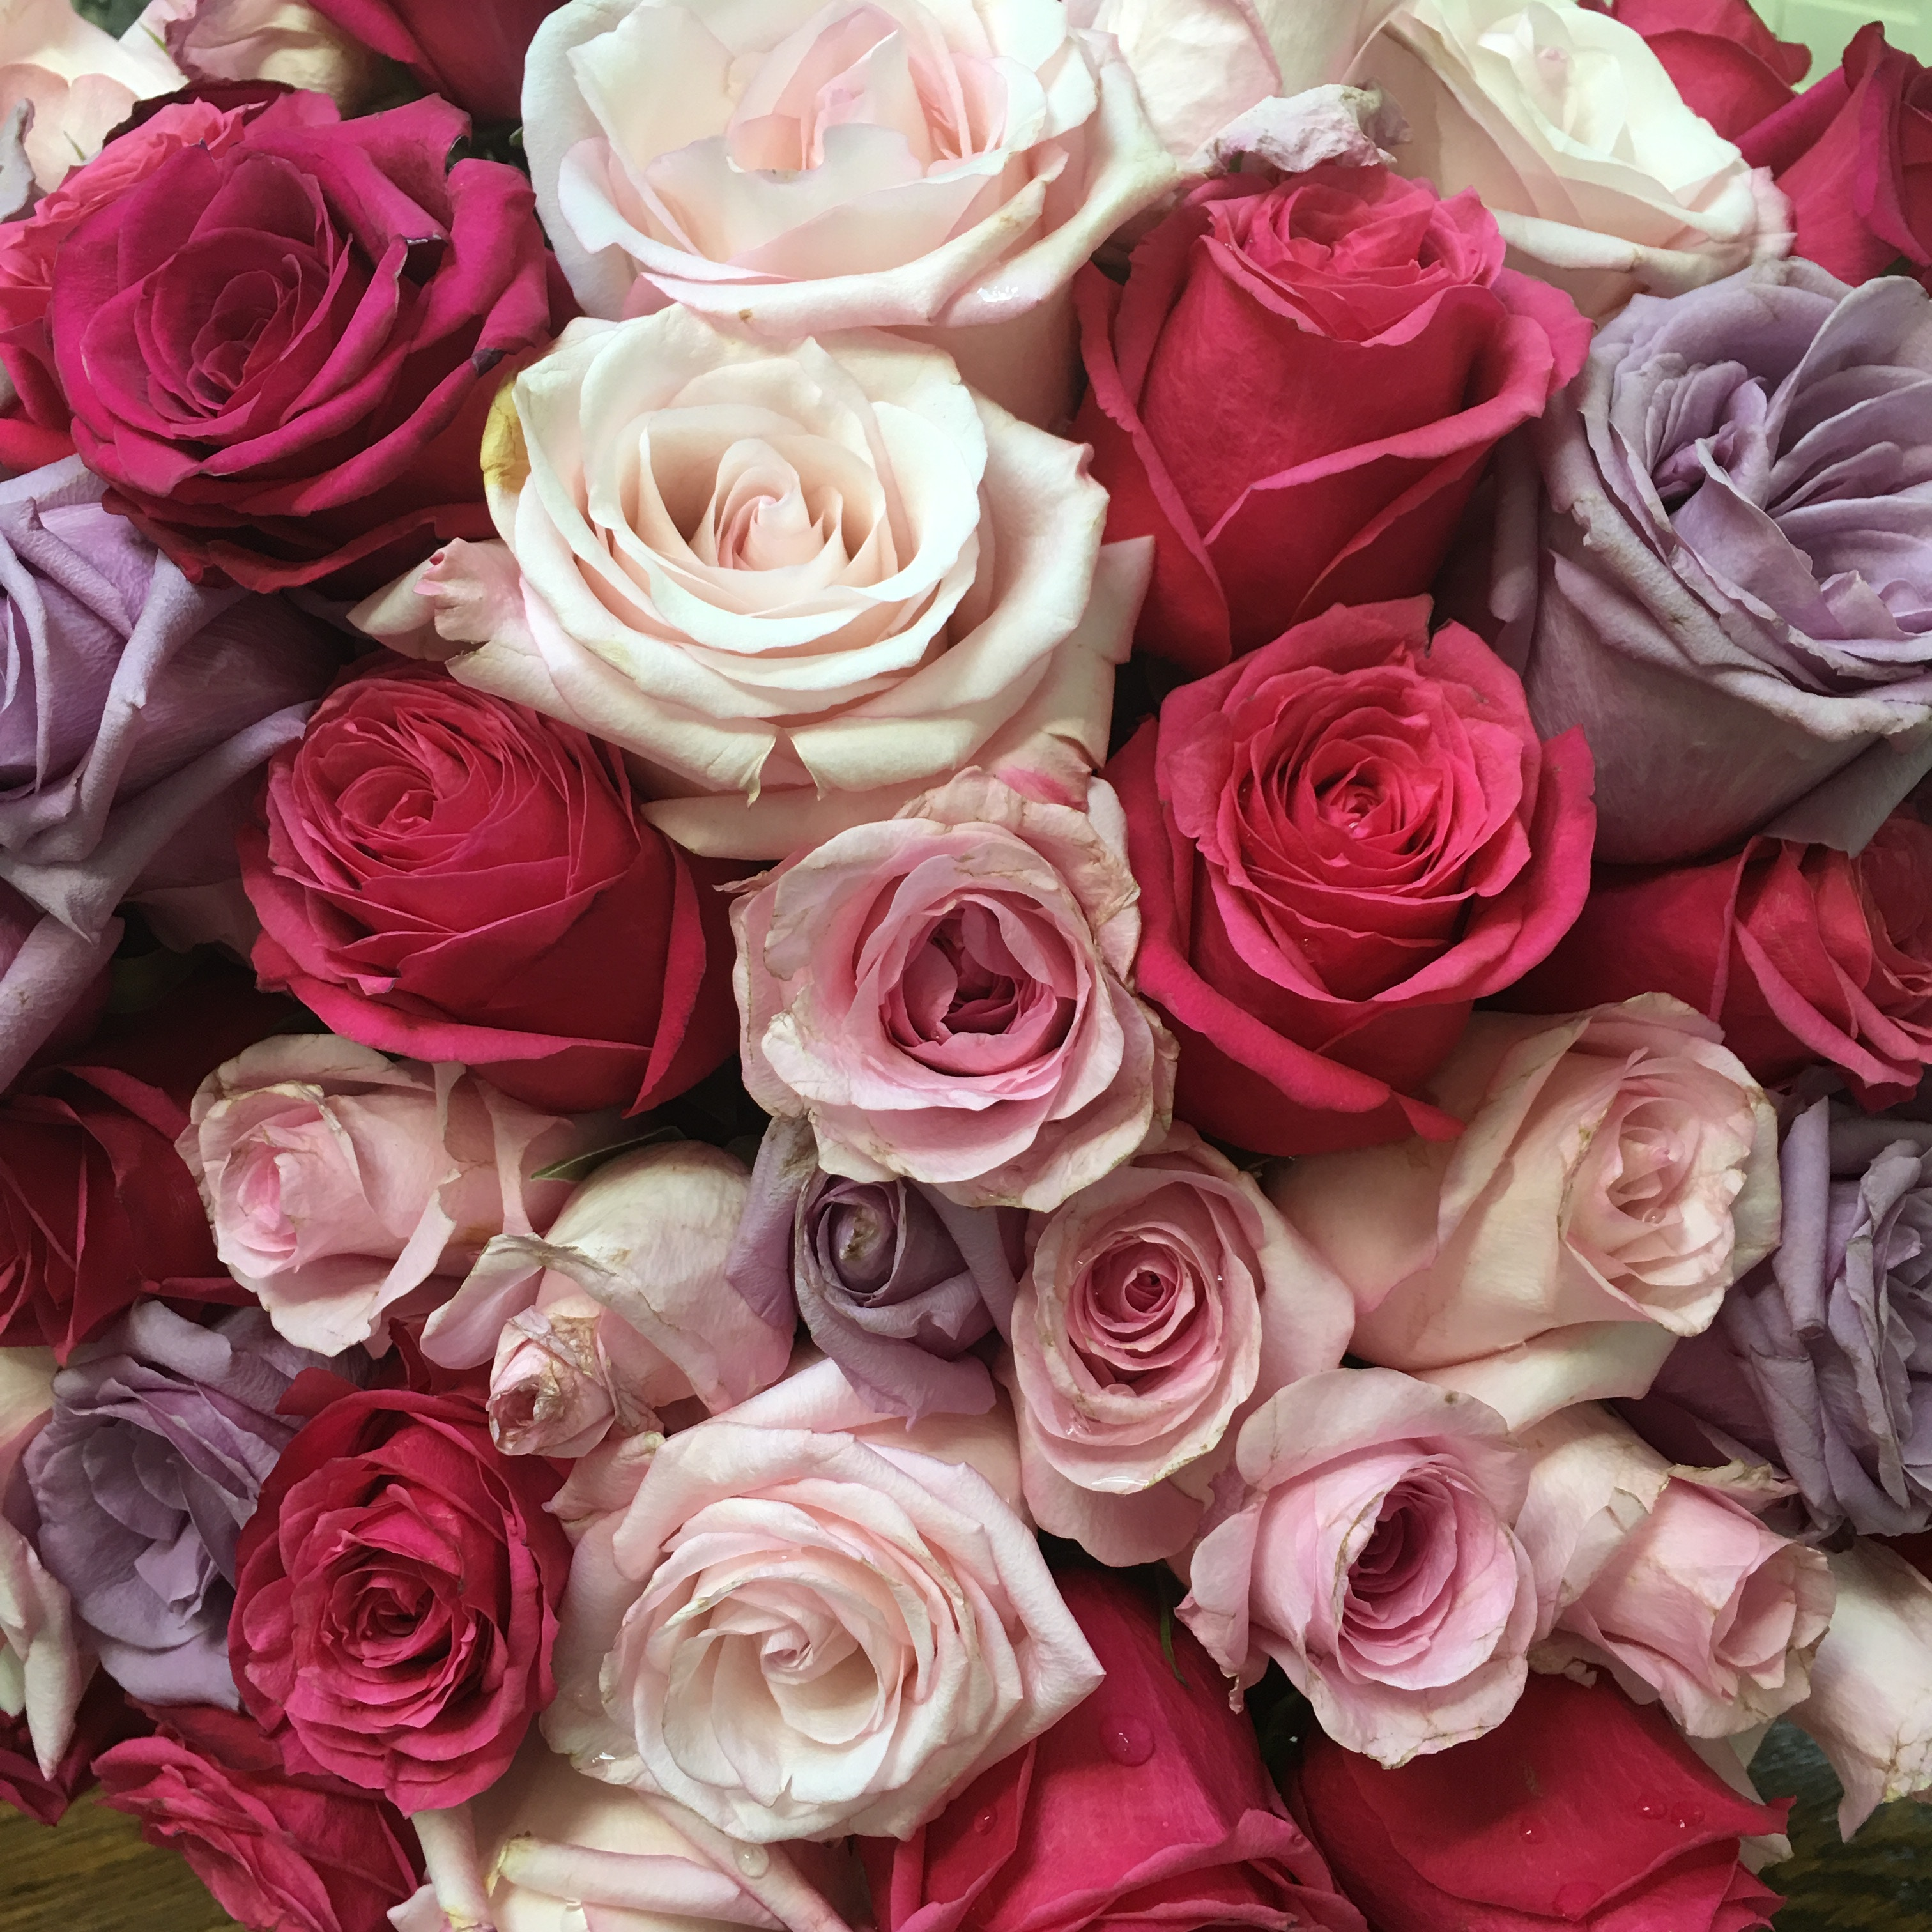 59144 download wallpaper Flowers, Roses, Multicolored, Motley, Bouquet screensavers and pictures for free